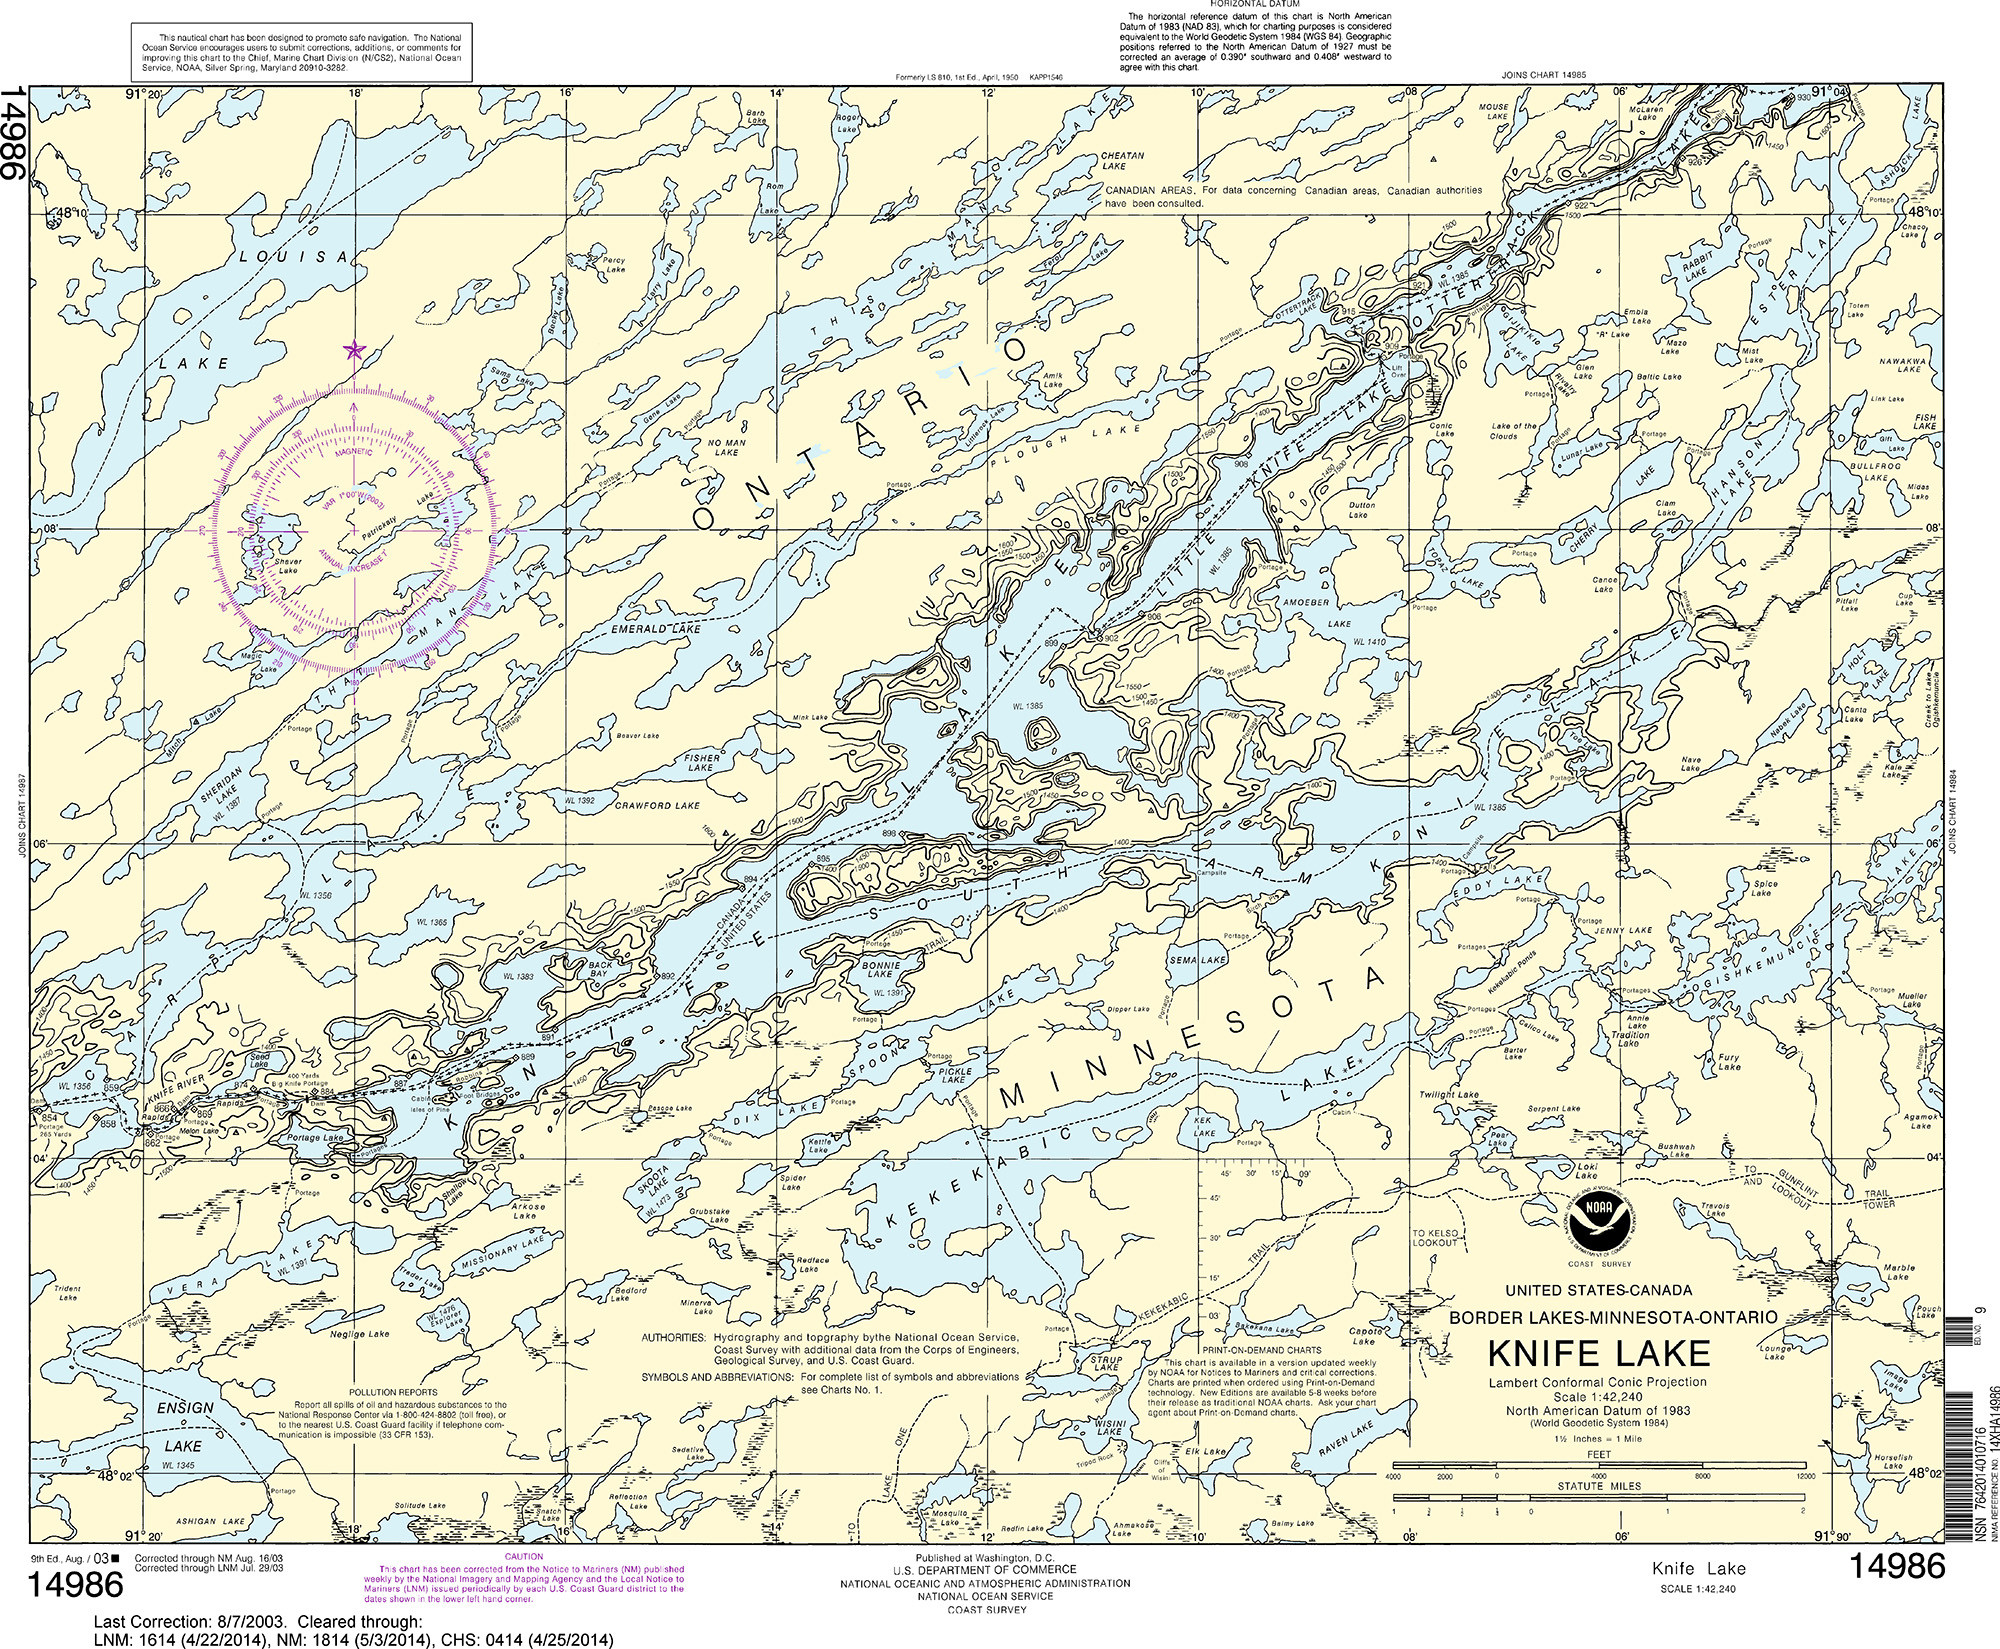 NOAA Nautical Chart - 14986 Knife Lake